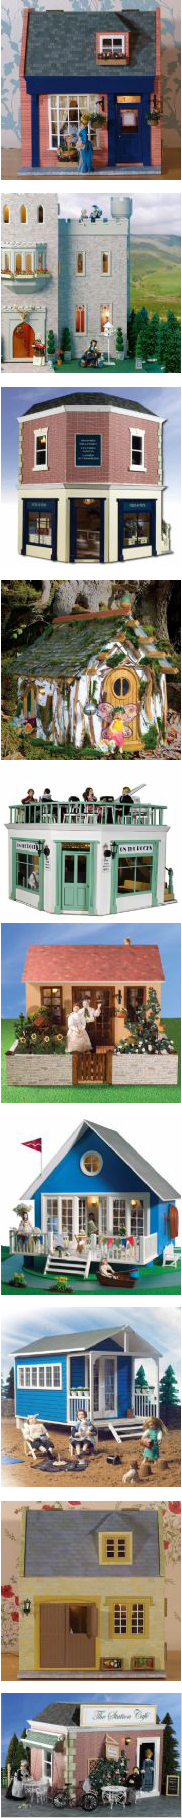 Creative dolls house competition win